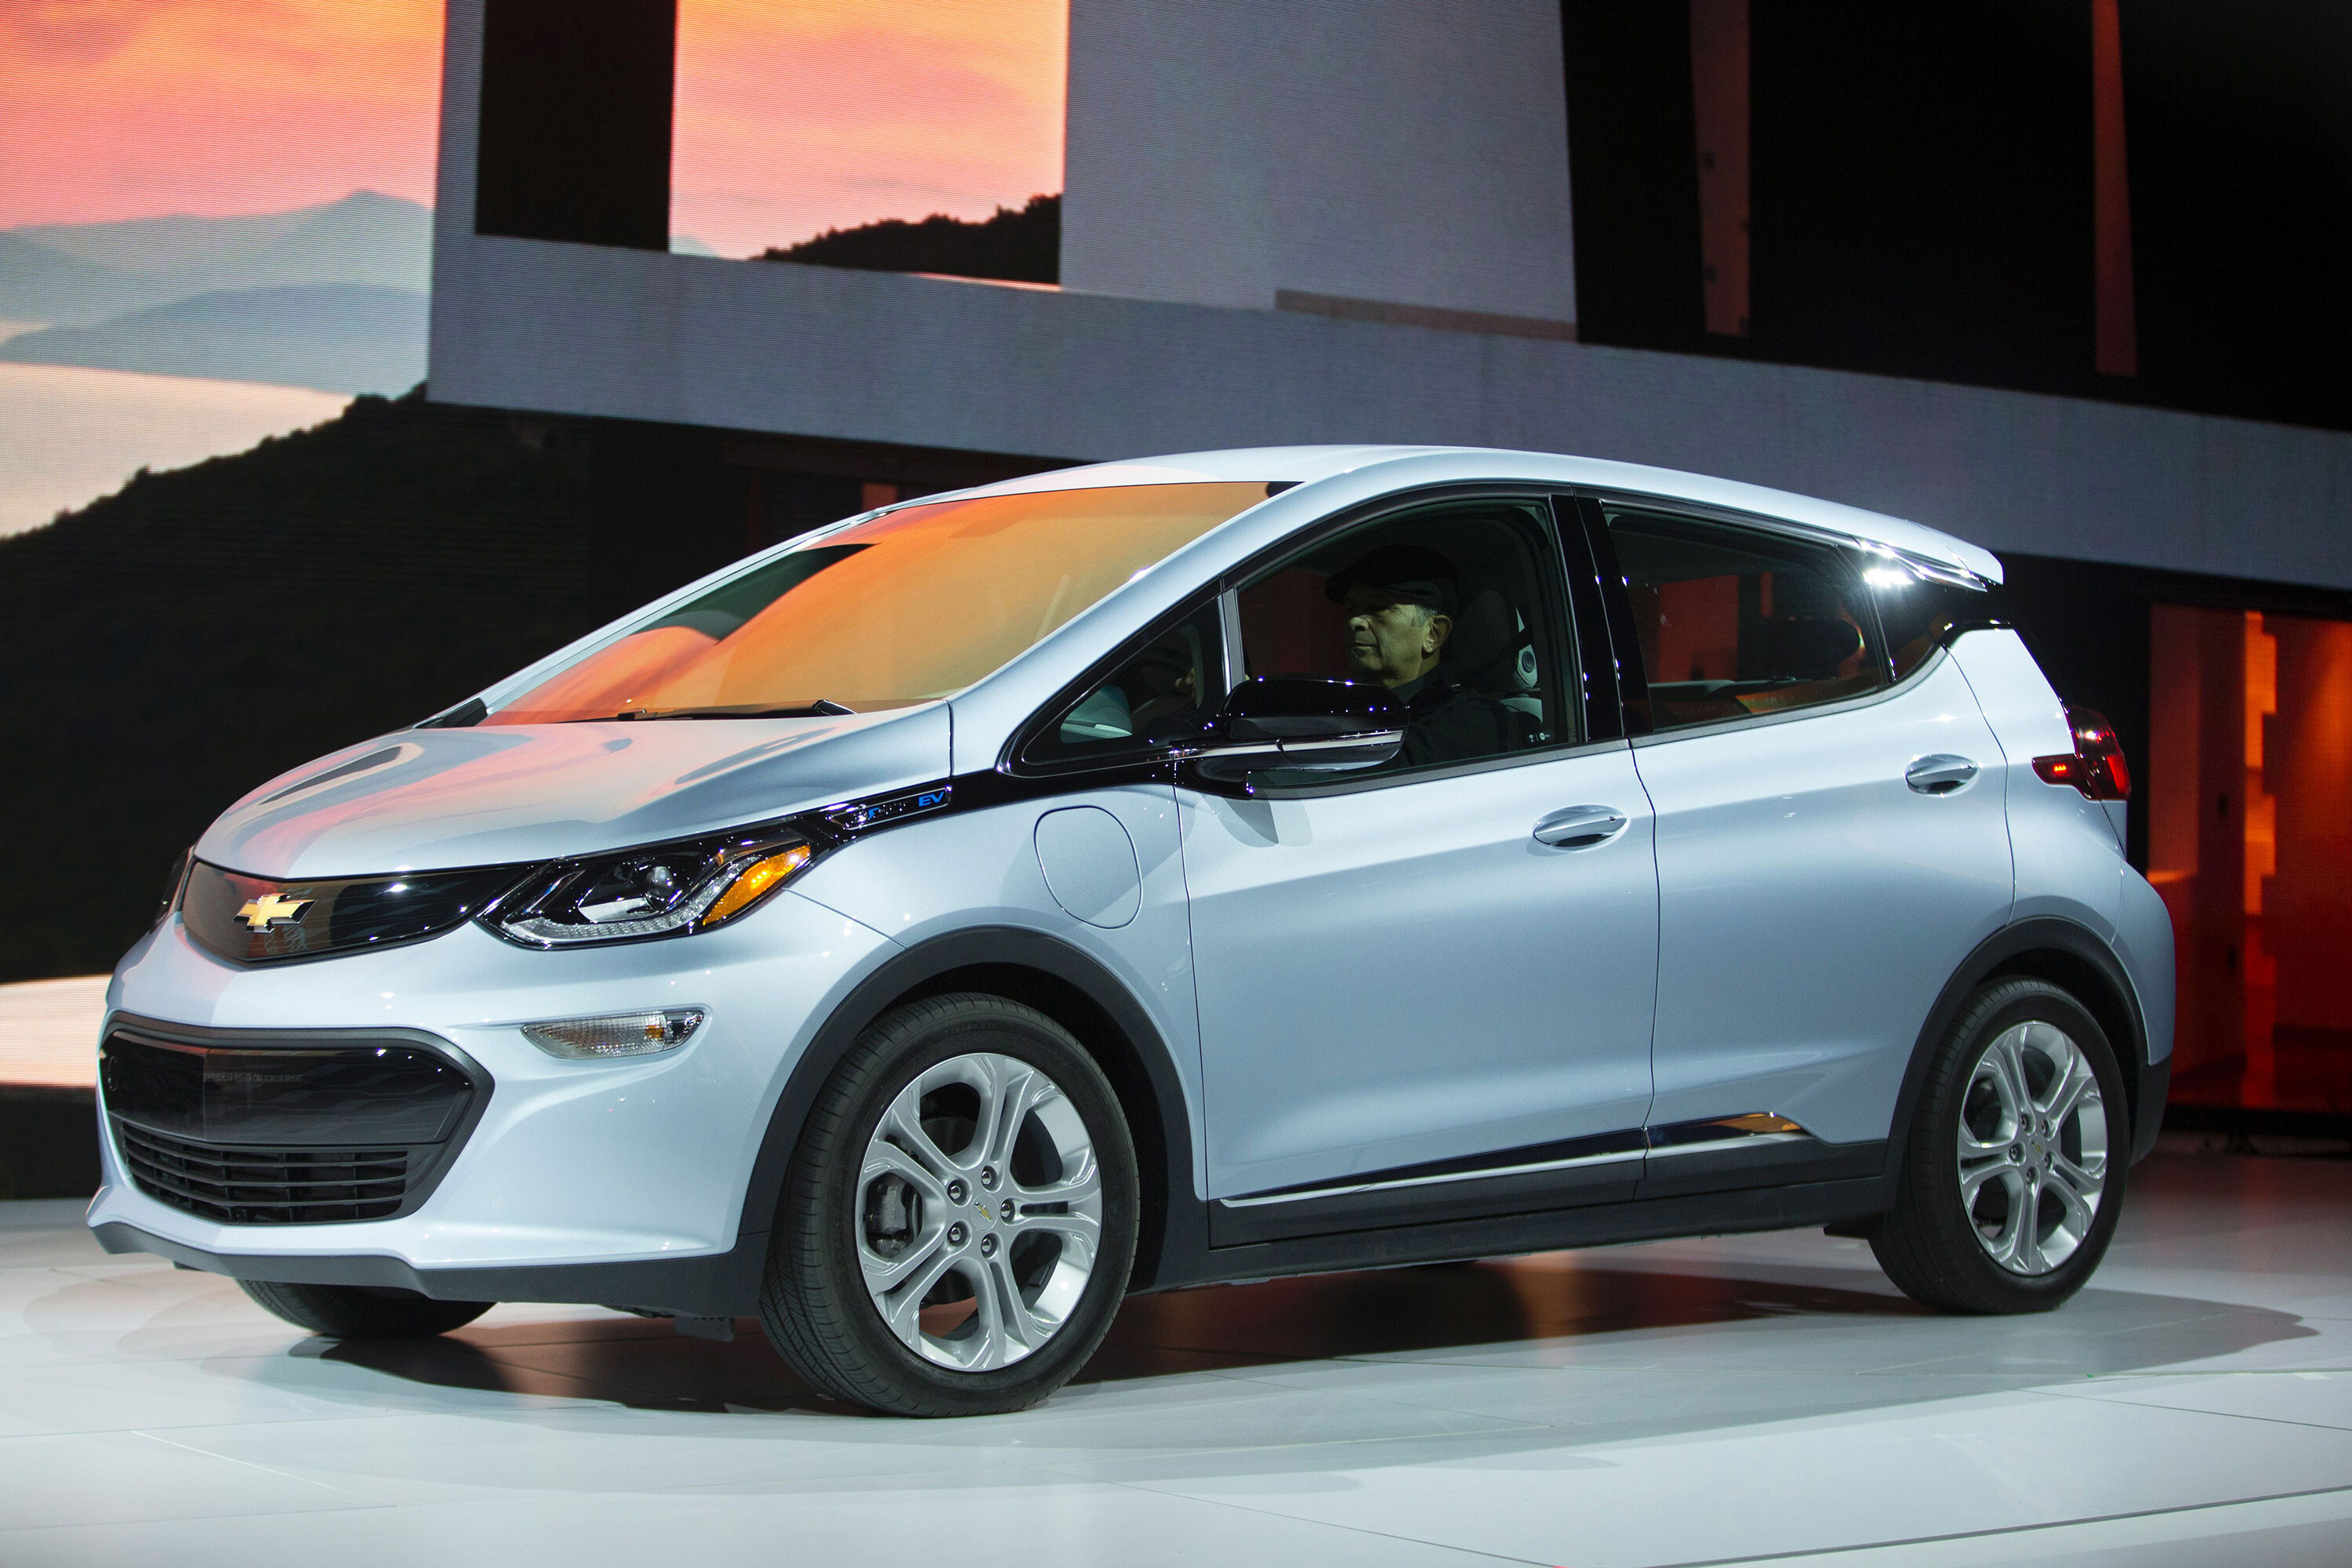 NHTSA warns of fire hazard with certain Chevy Bolt EVs